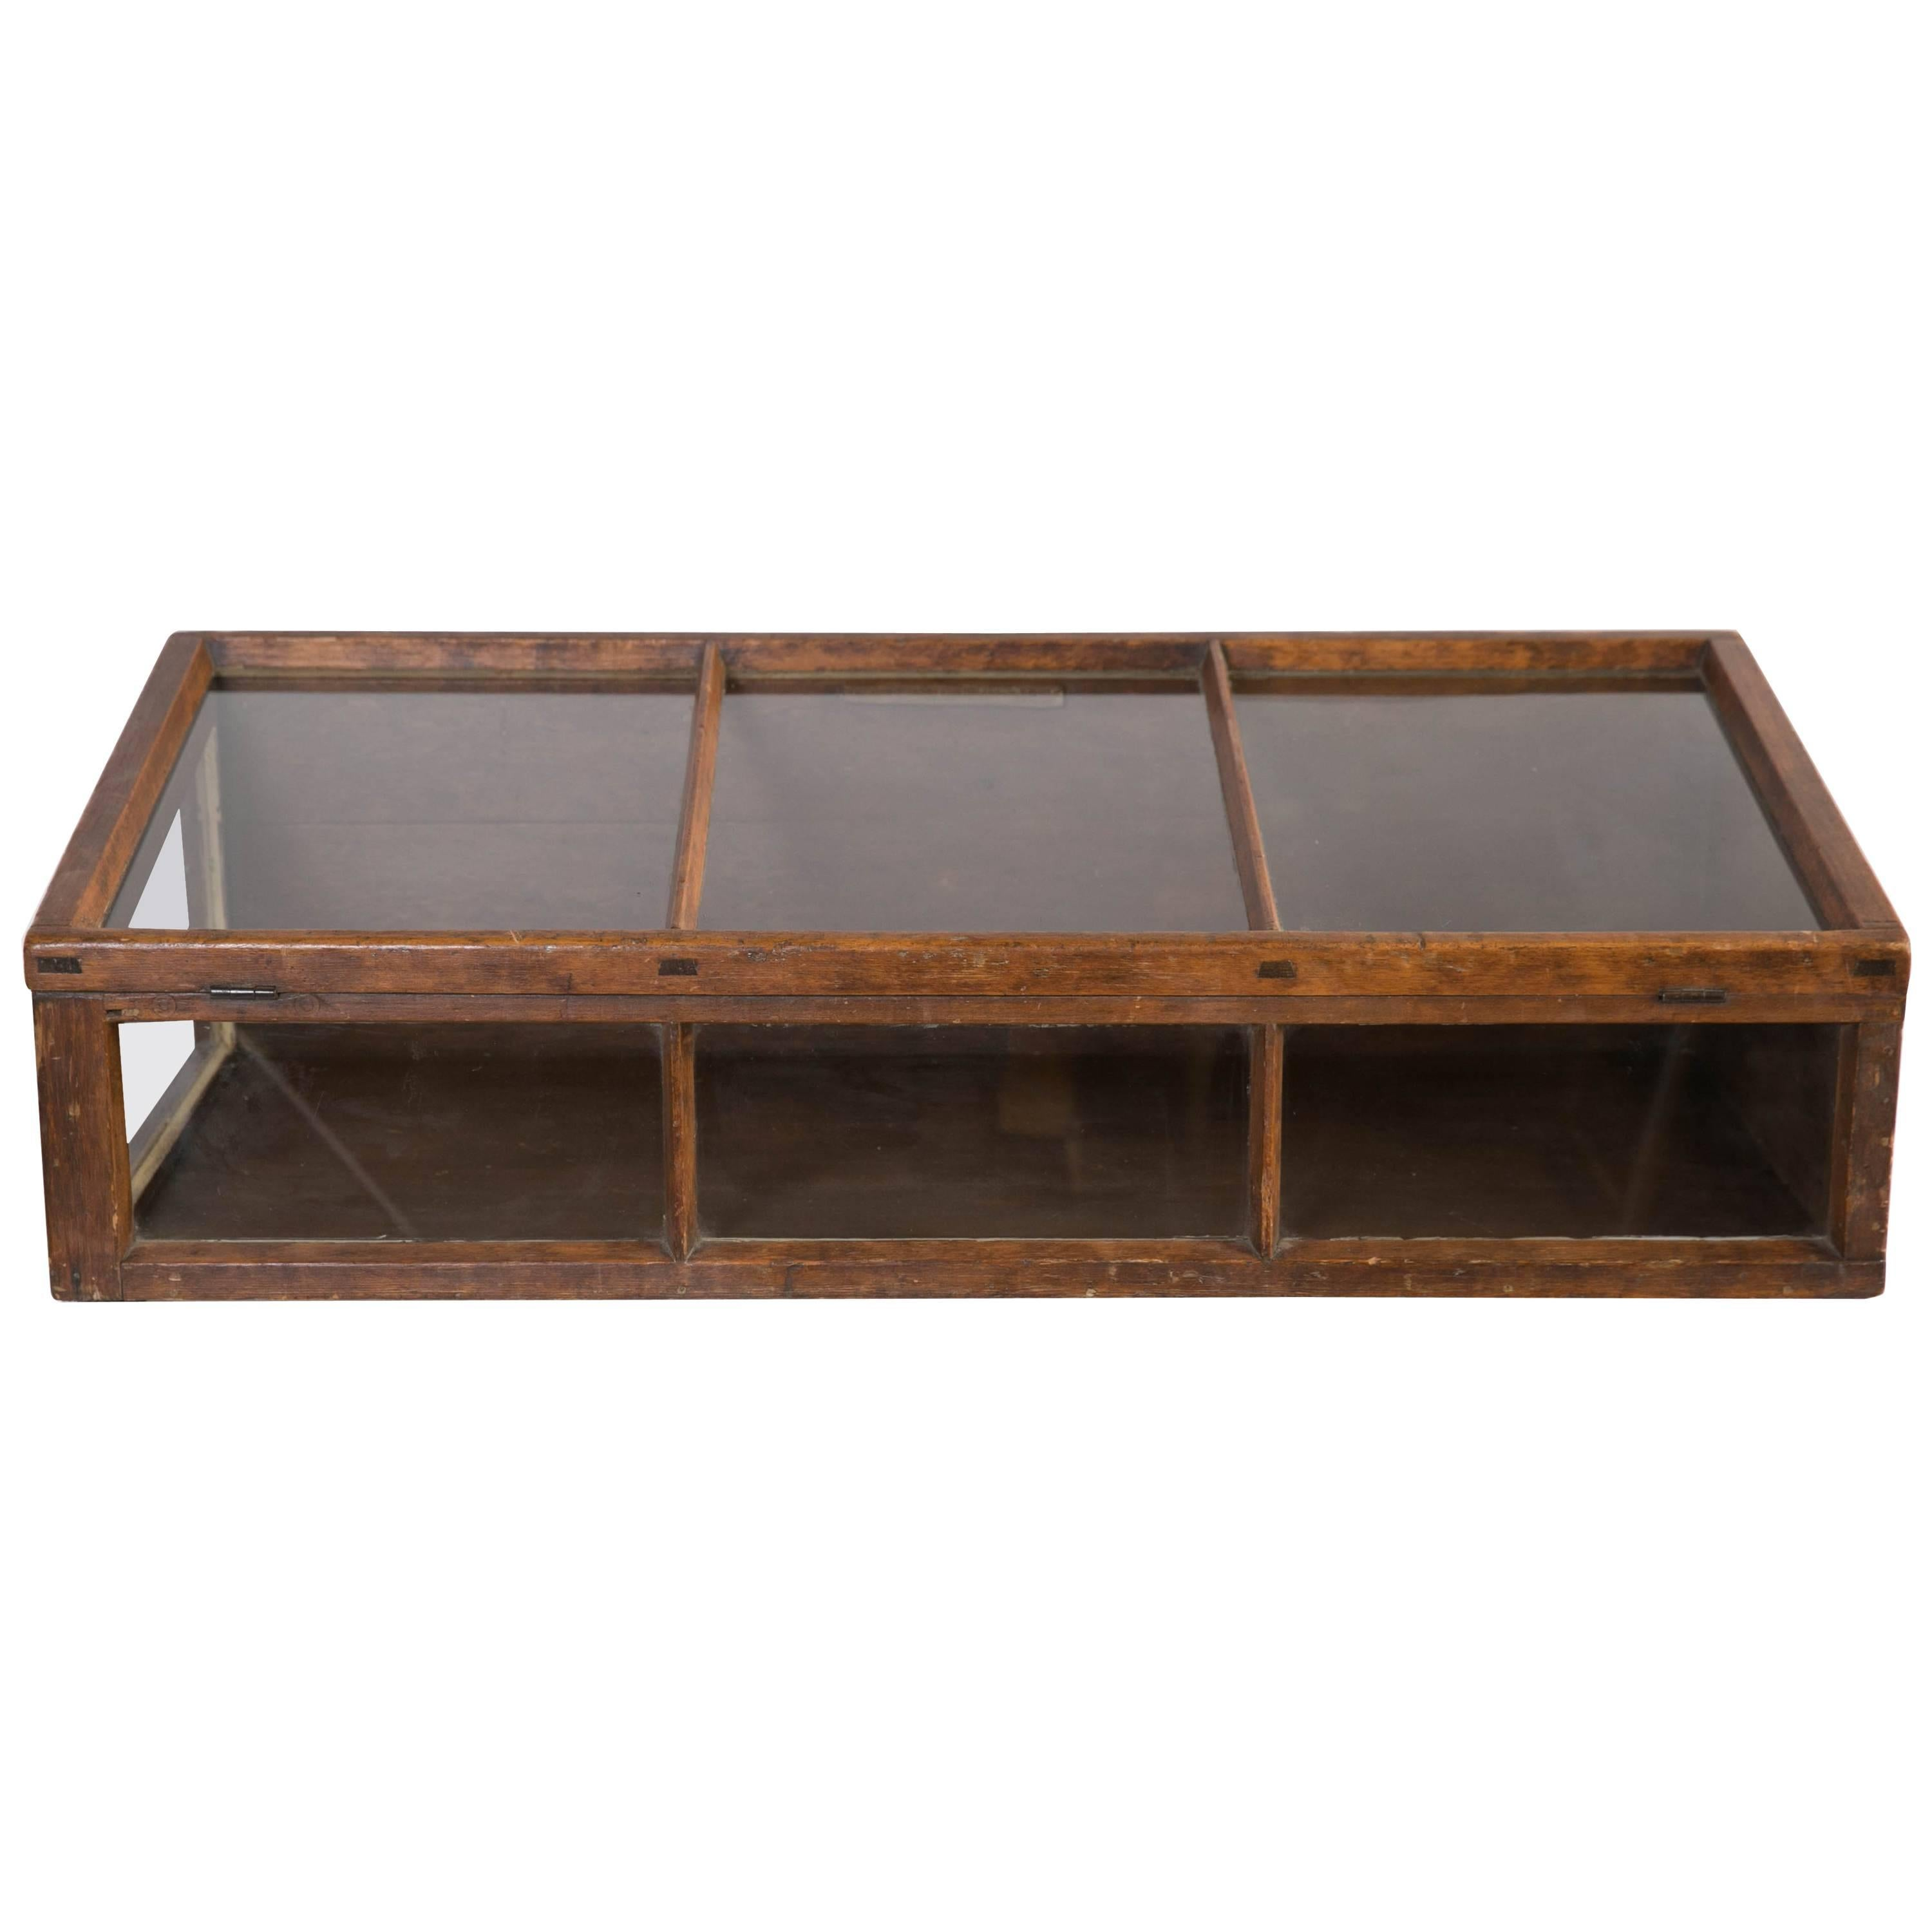 antique tabletop store display cabinet for sale at 1stdibs rh 1stdibs com